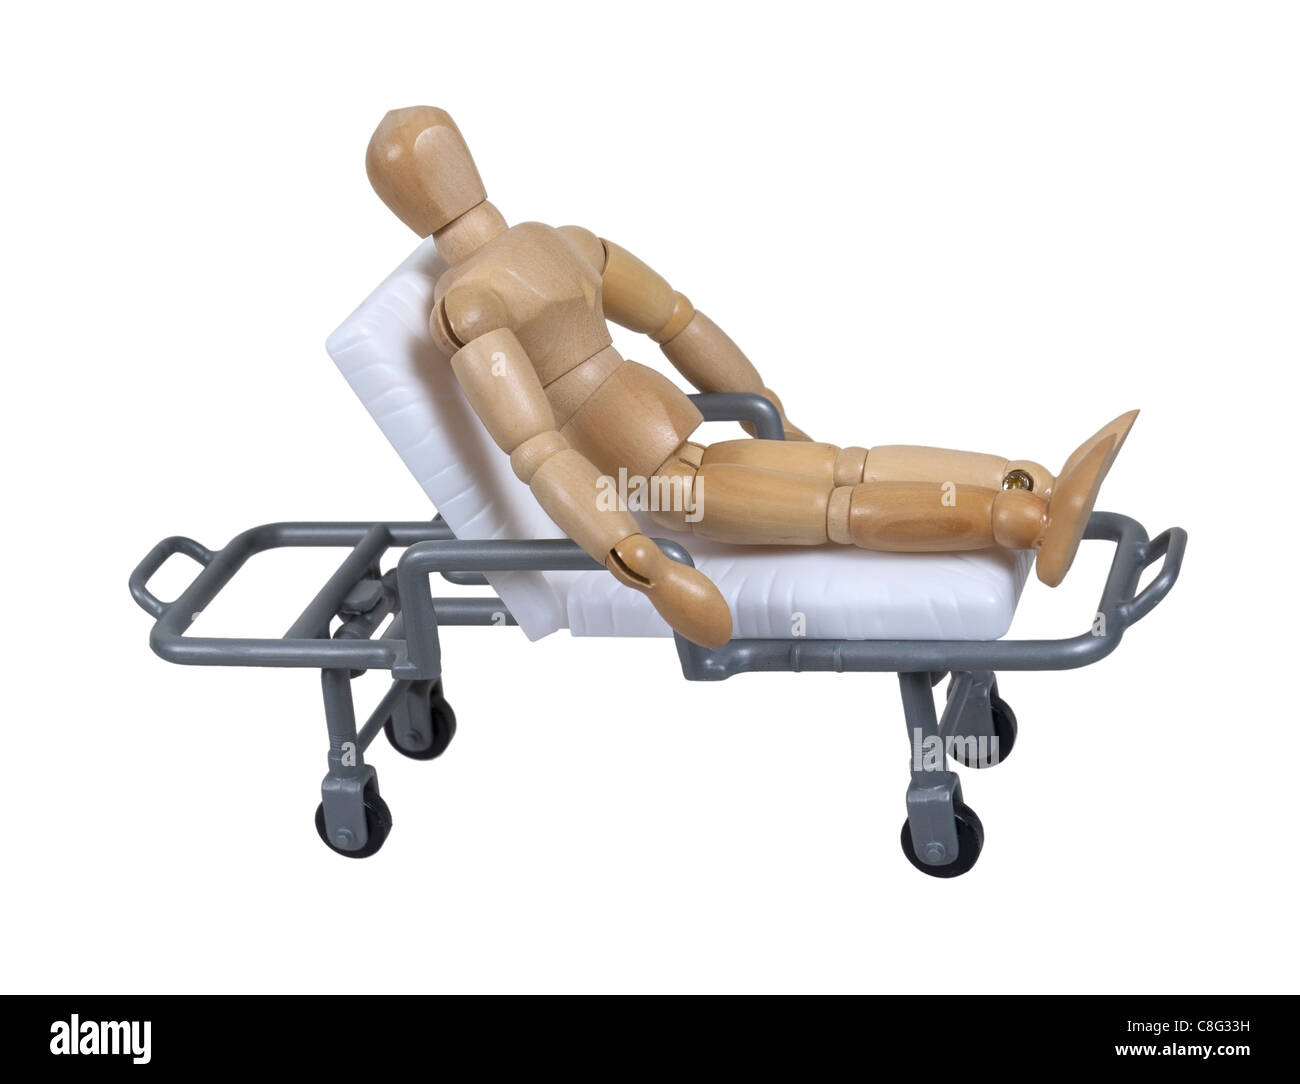 Patient on a hospital gurney used for transporting patients between places - path included - Stock Image